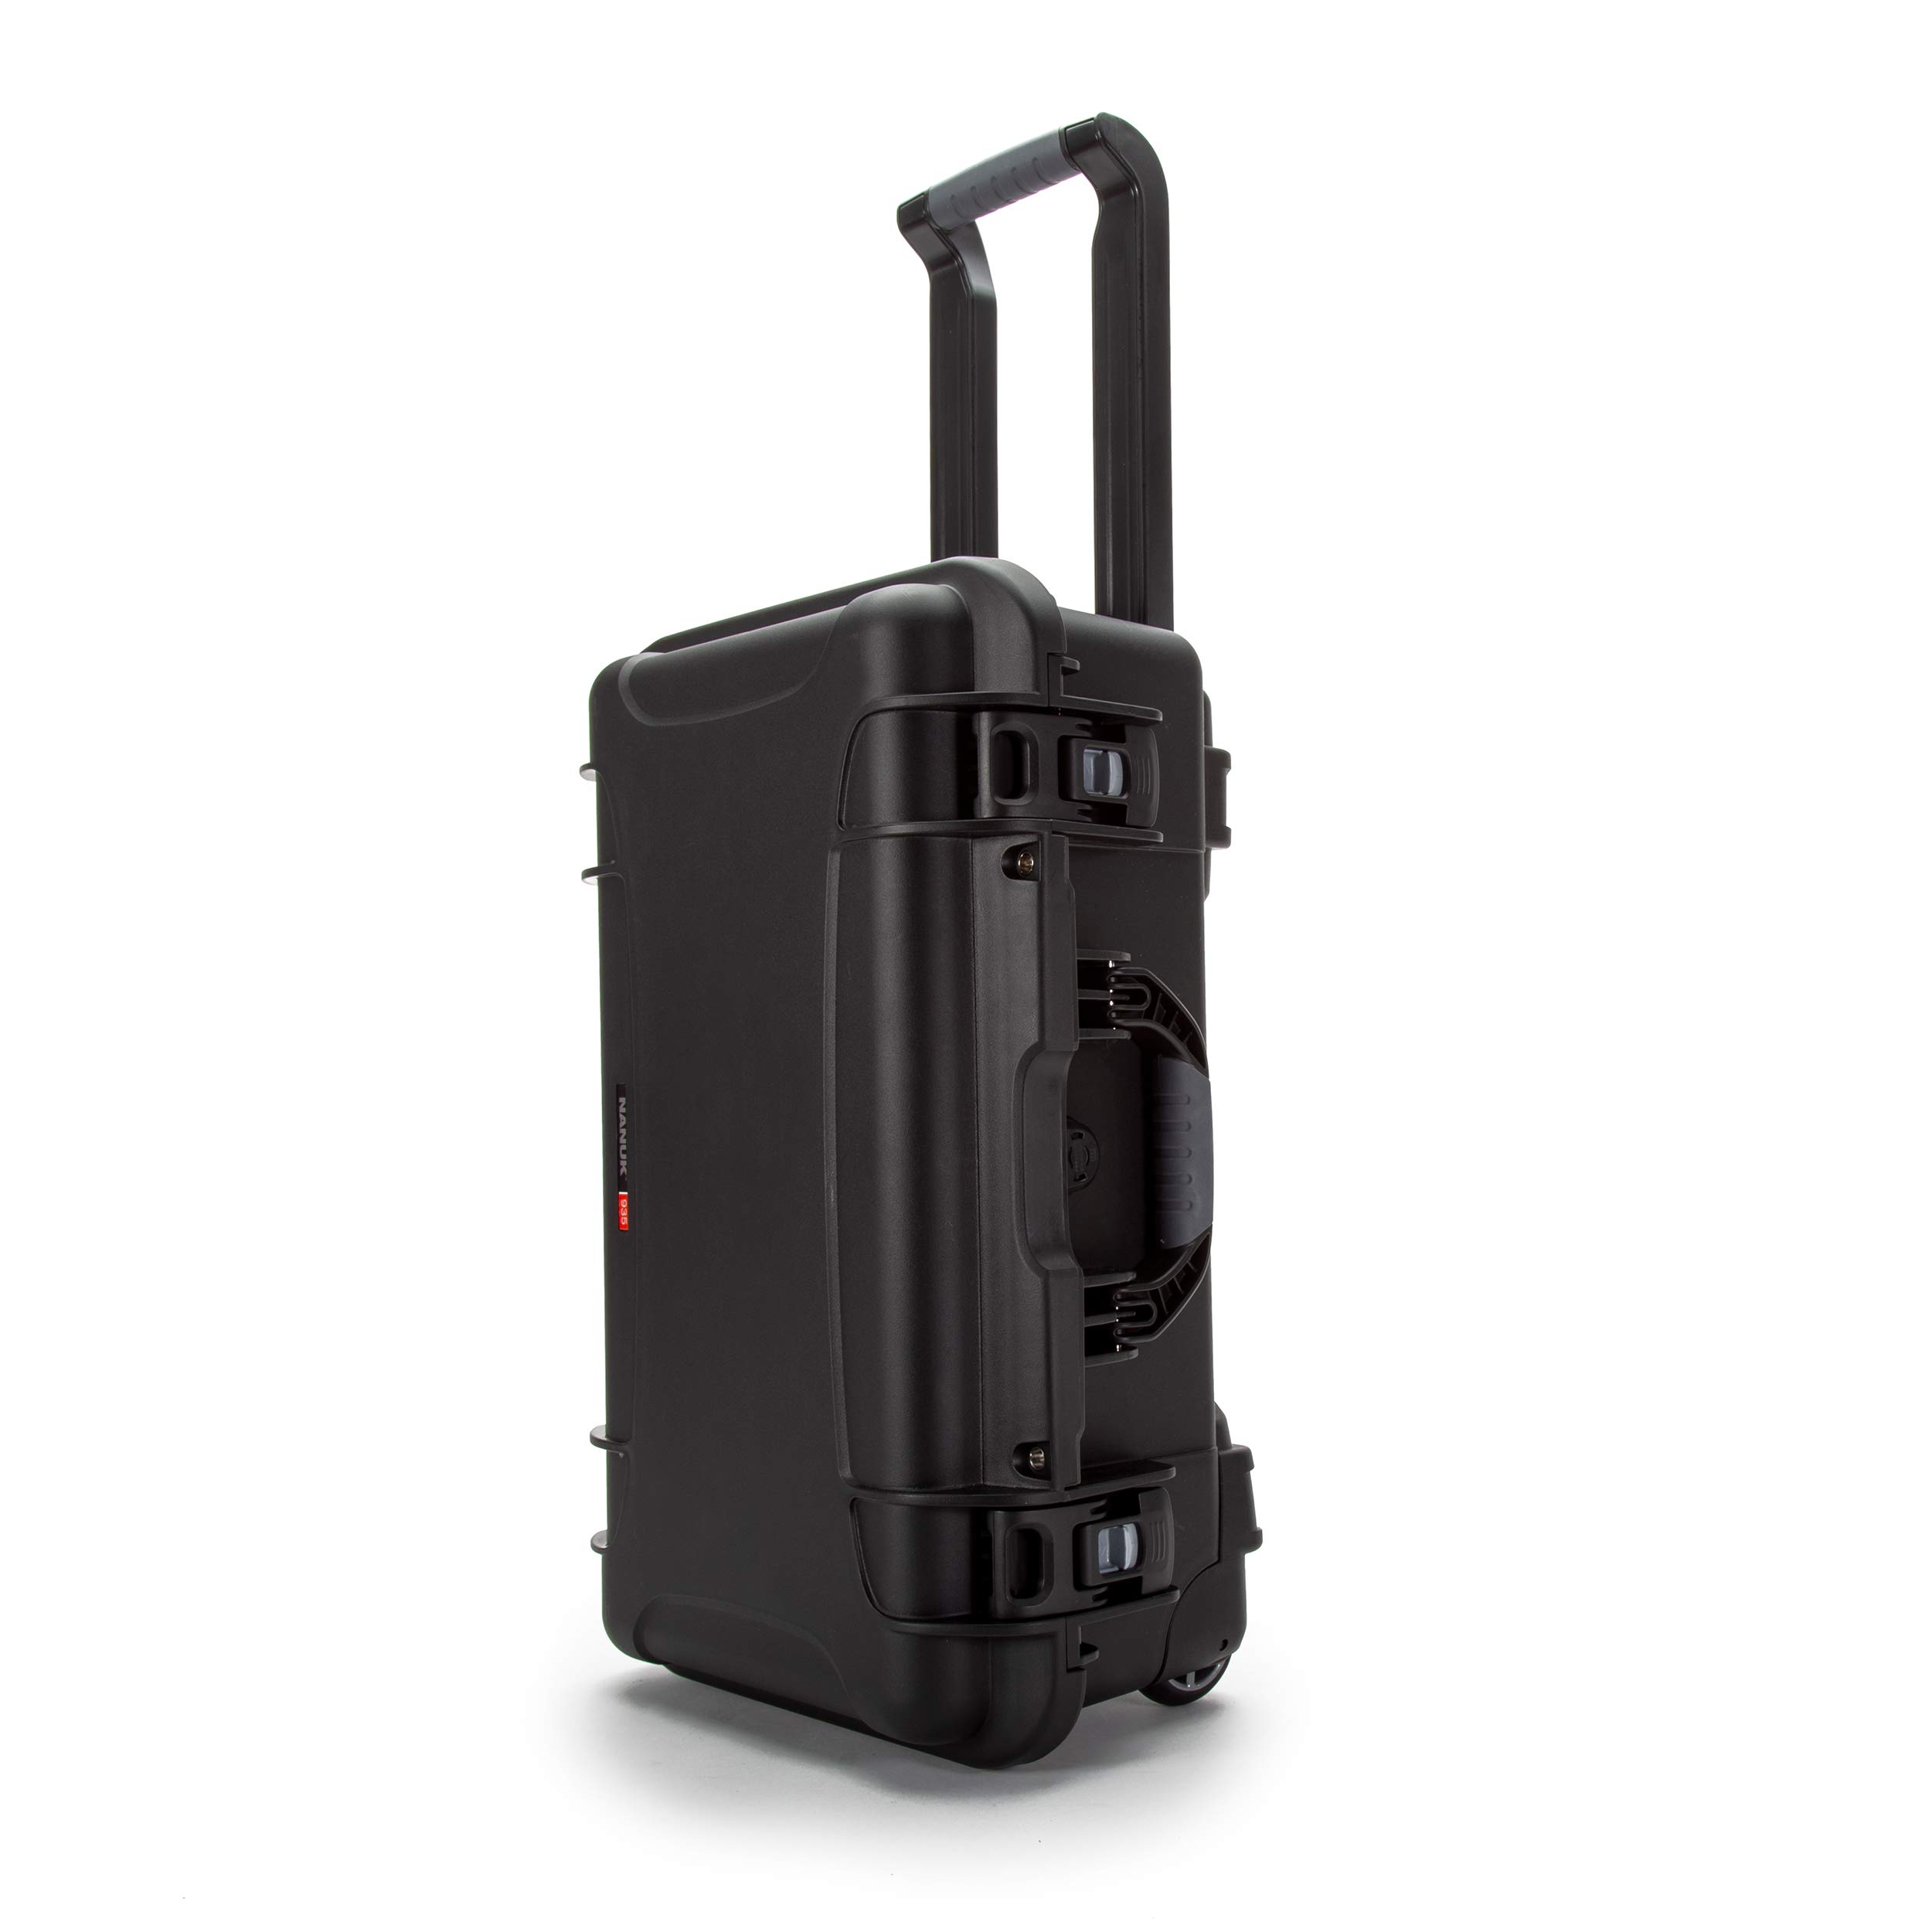 Nanuk 935 Waterproof Carry-On Hard Case with Wheels and Foam Insert - Black by Nanuk (Image #1)